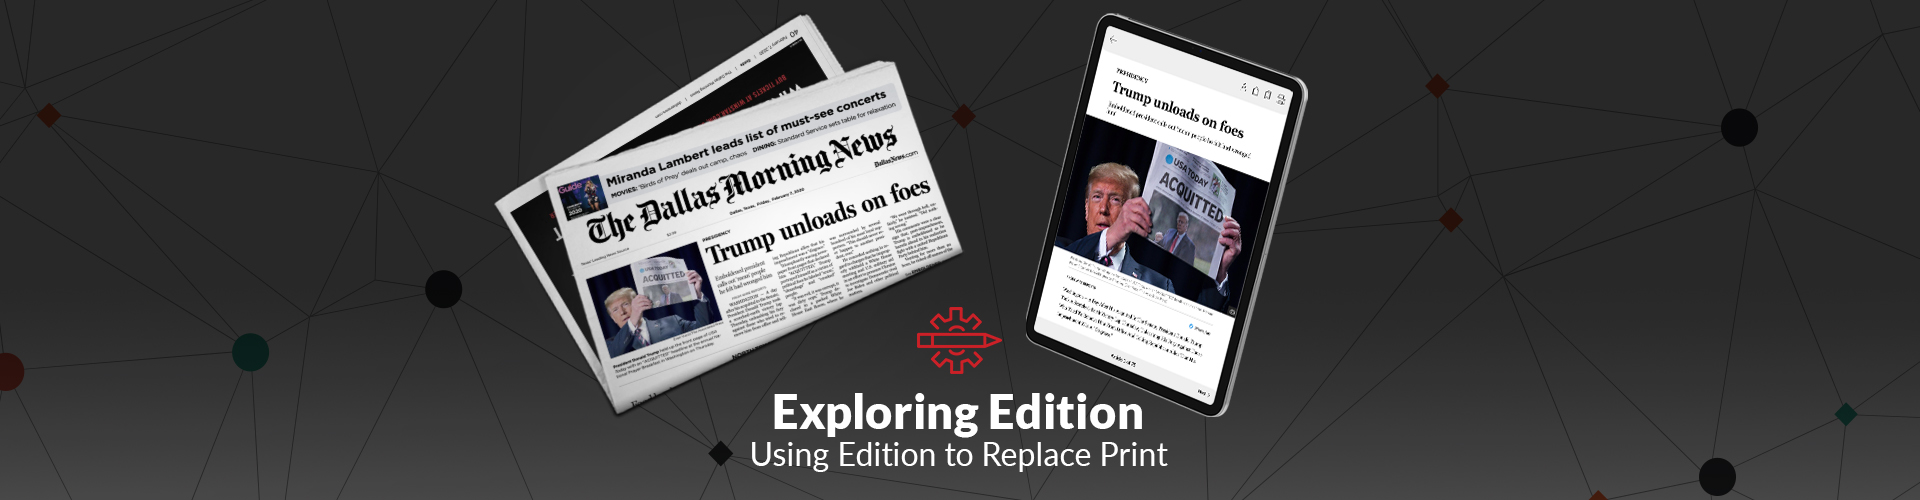 Exploring Edition: Using Edition to Replace Print